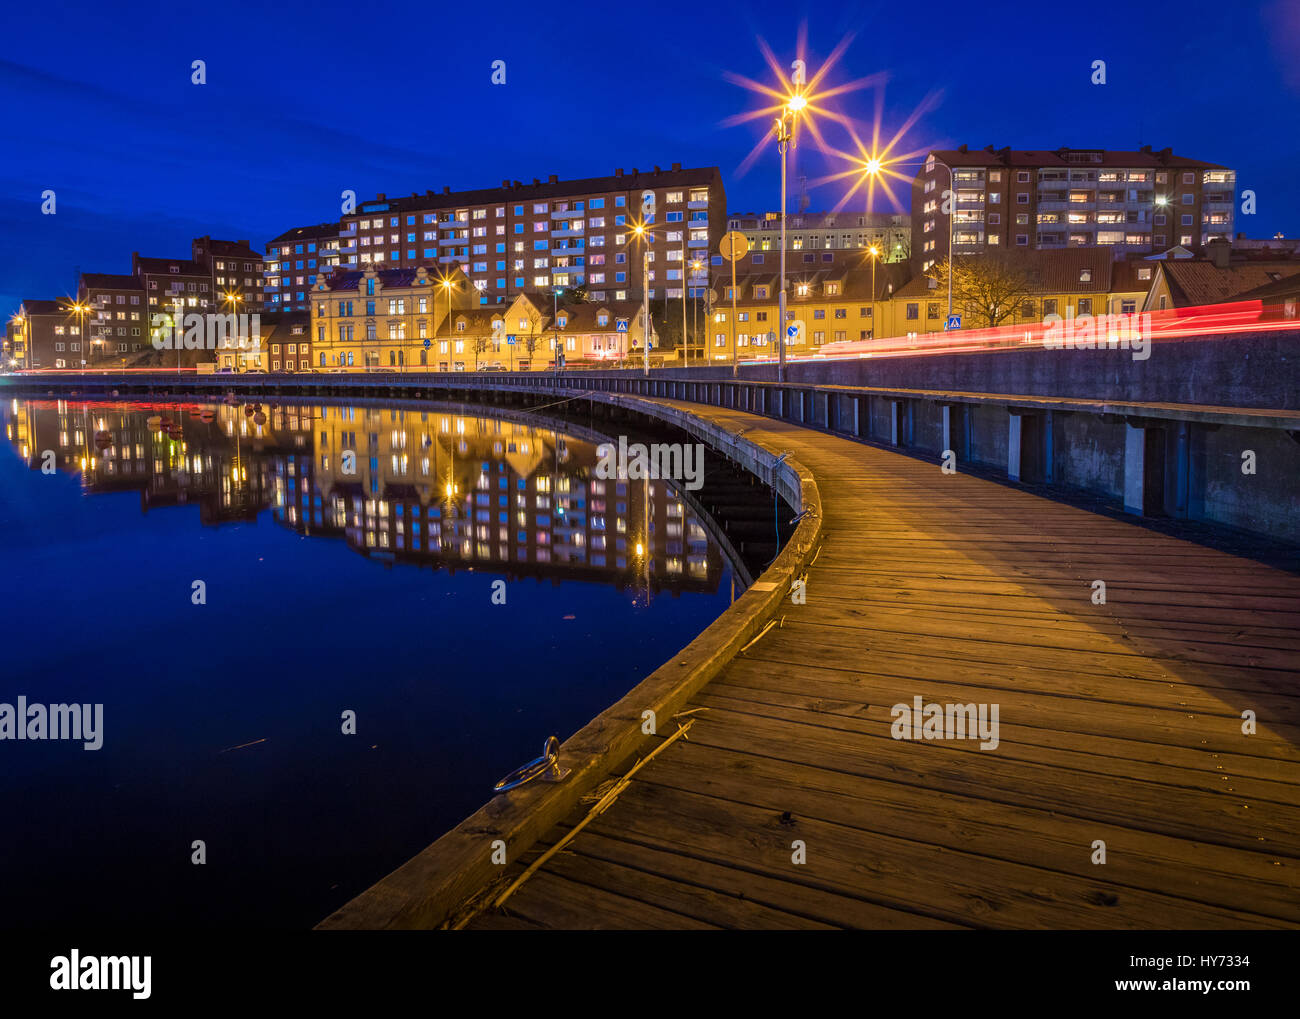 Urban buildings in Karlskona, Sweden ..... Karlskrona is a locality and the seat of Karlskrona Municipality, Blekinge - Stock Image